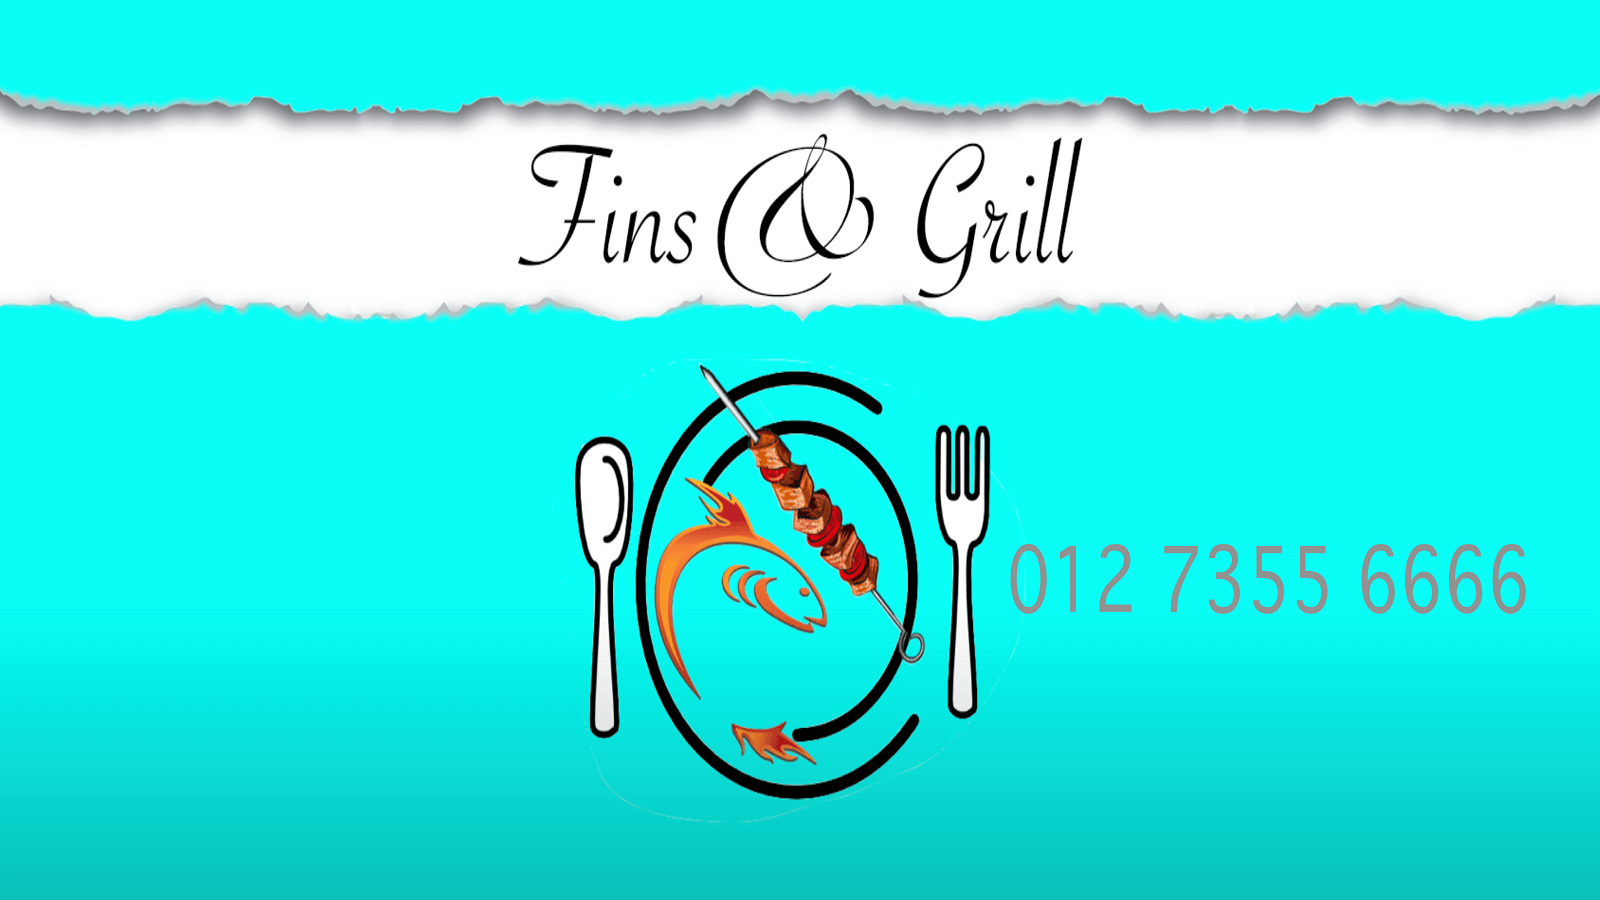 Fins and Grill